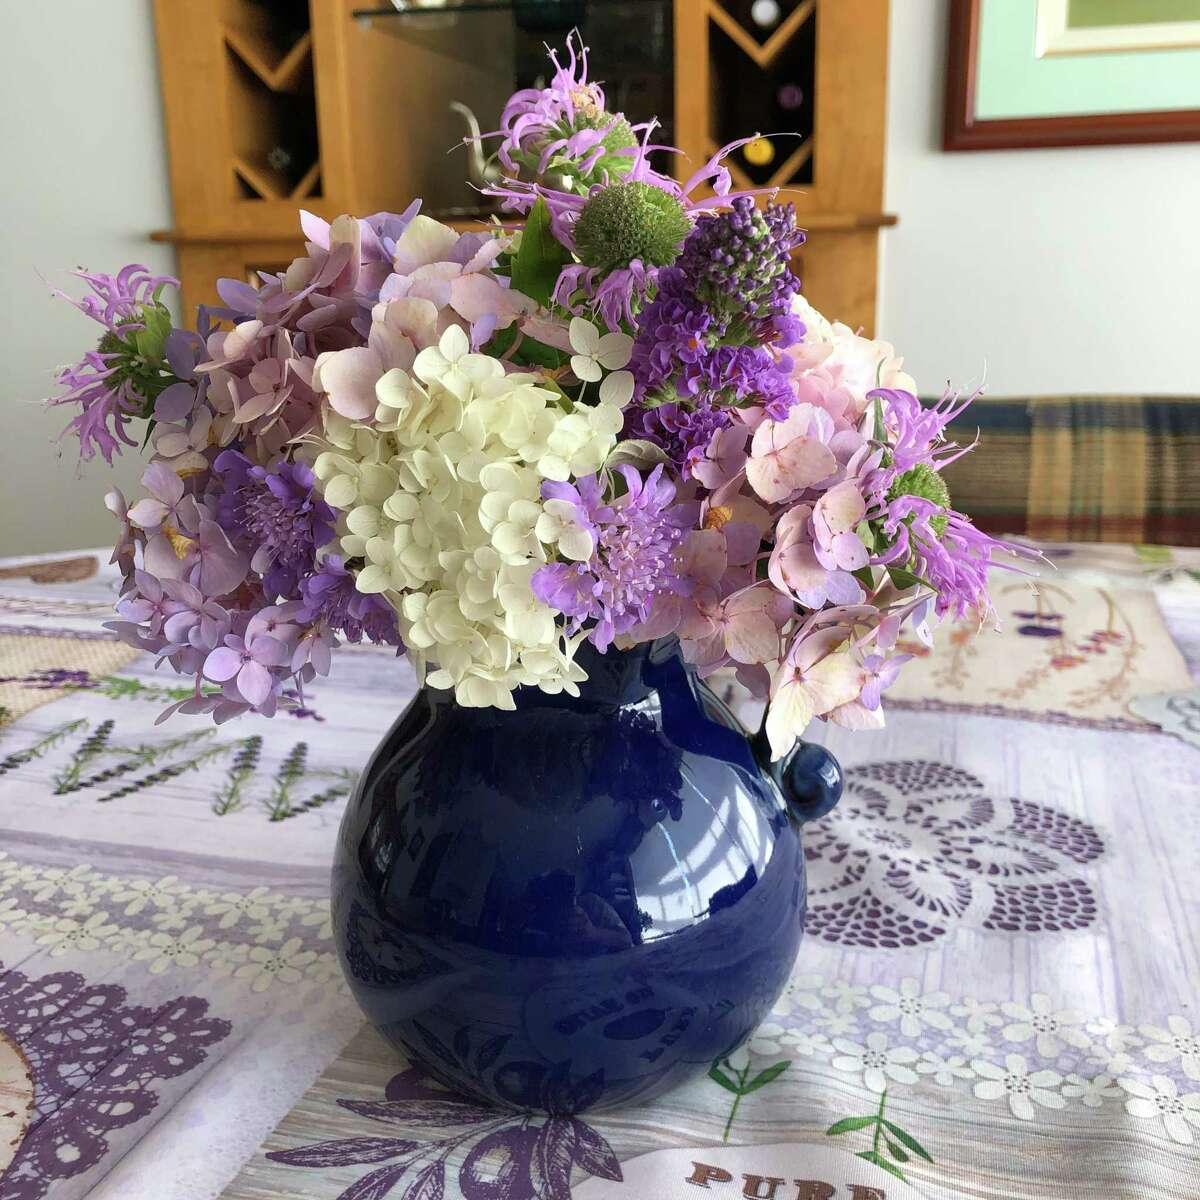 In Winchester, Va., Elizabeth Gomez used flowers for tabletop bouquets, including hydrangea, scabiosa, bee balm and buddleia.